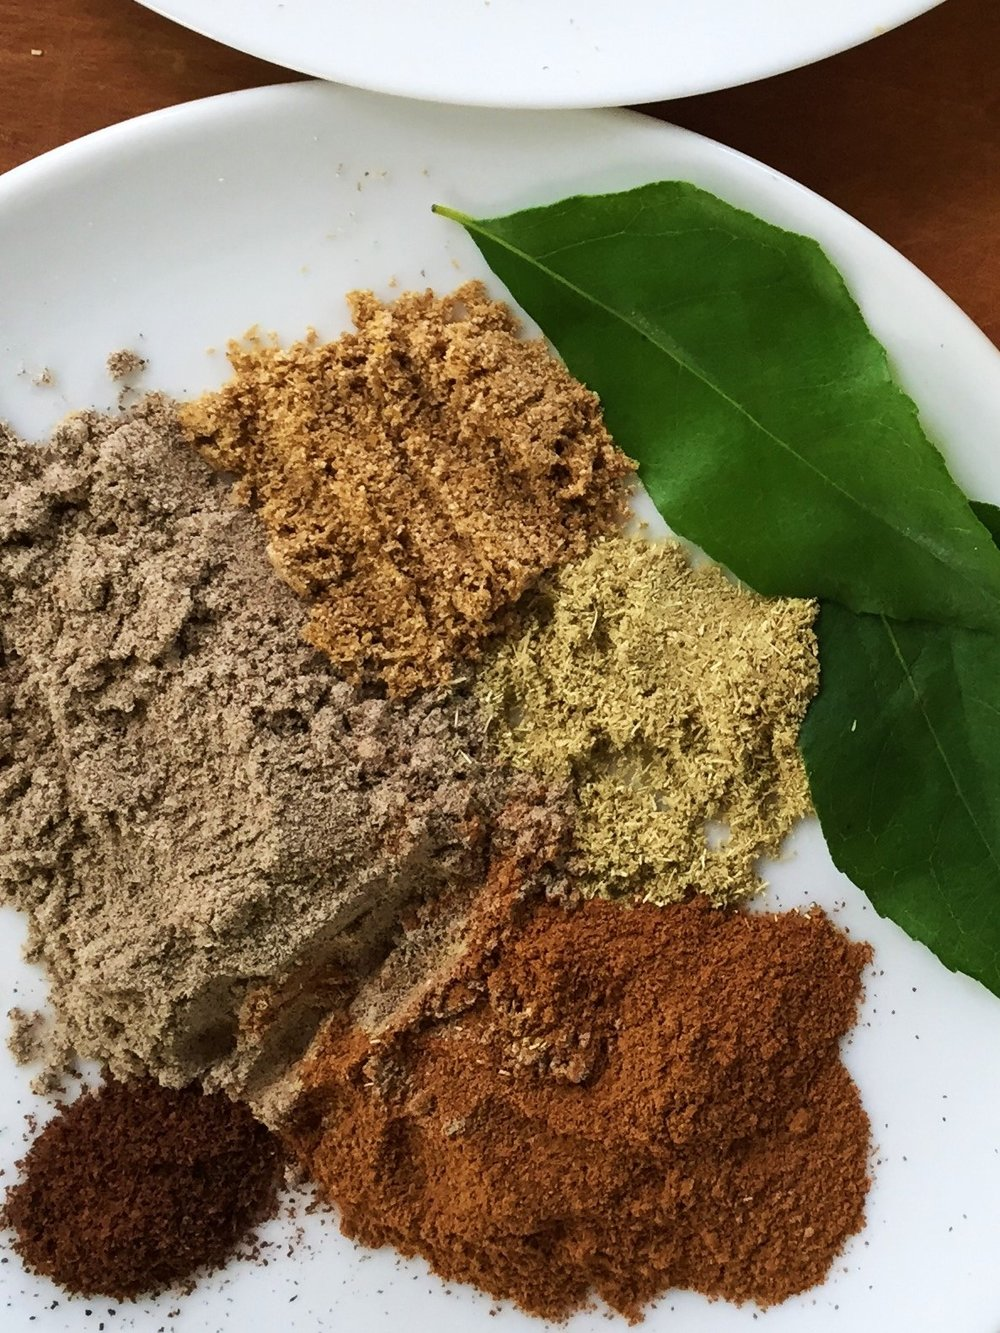 Combine the spices together to add with the curry leaves all at once. They'll splatter a lot, so use the pot lid to protect yourself.